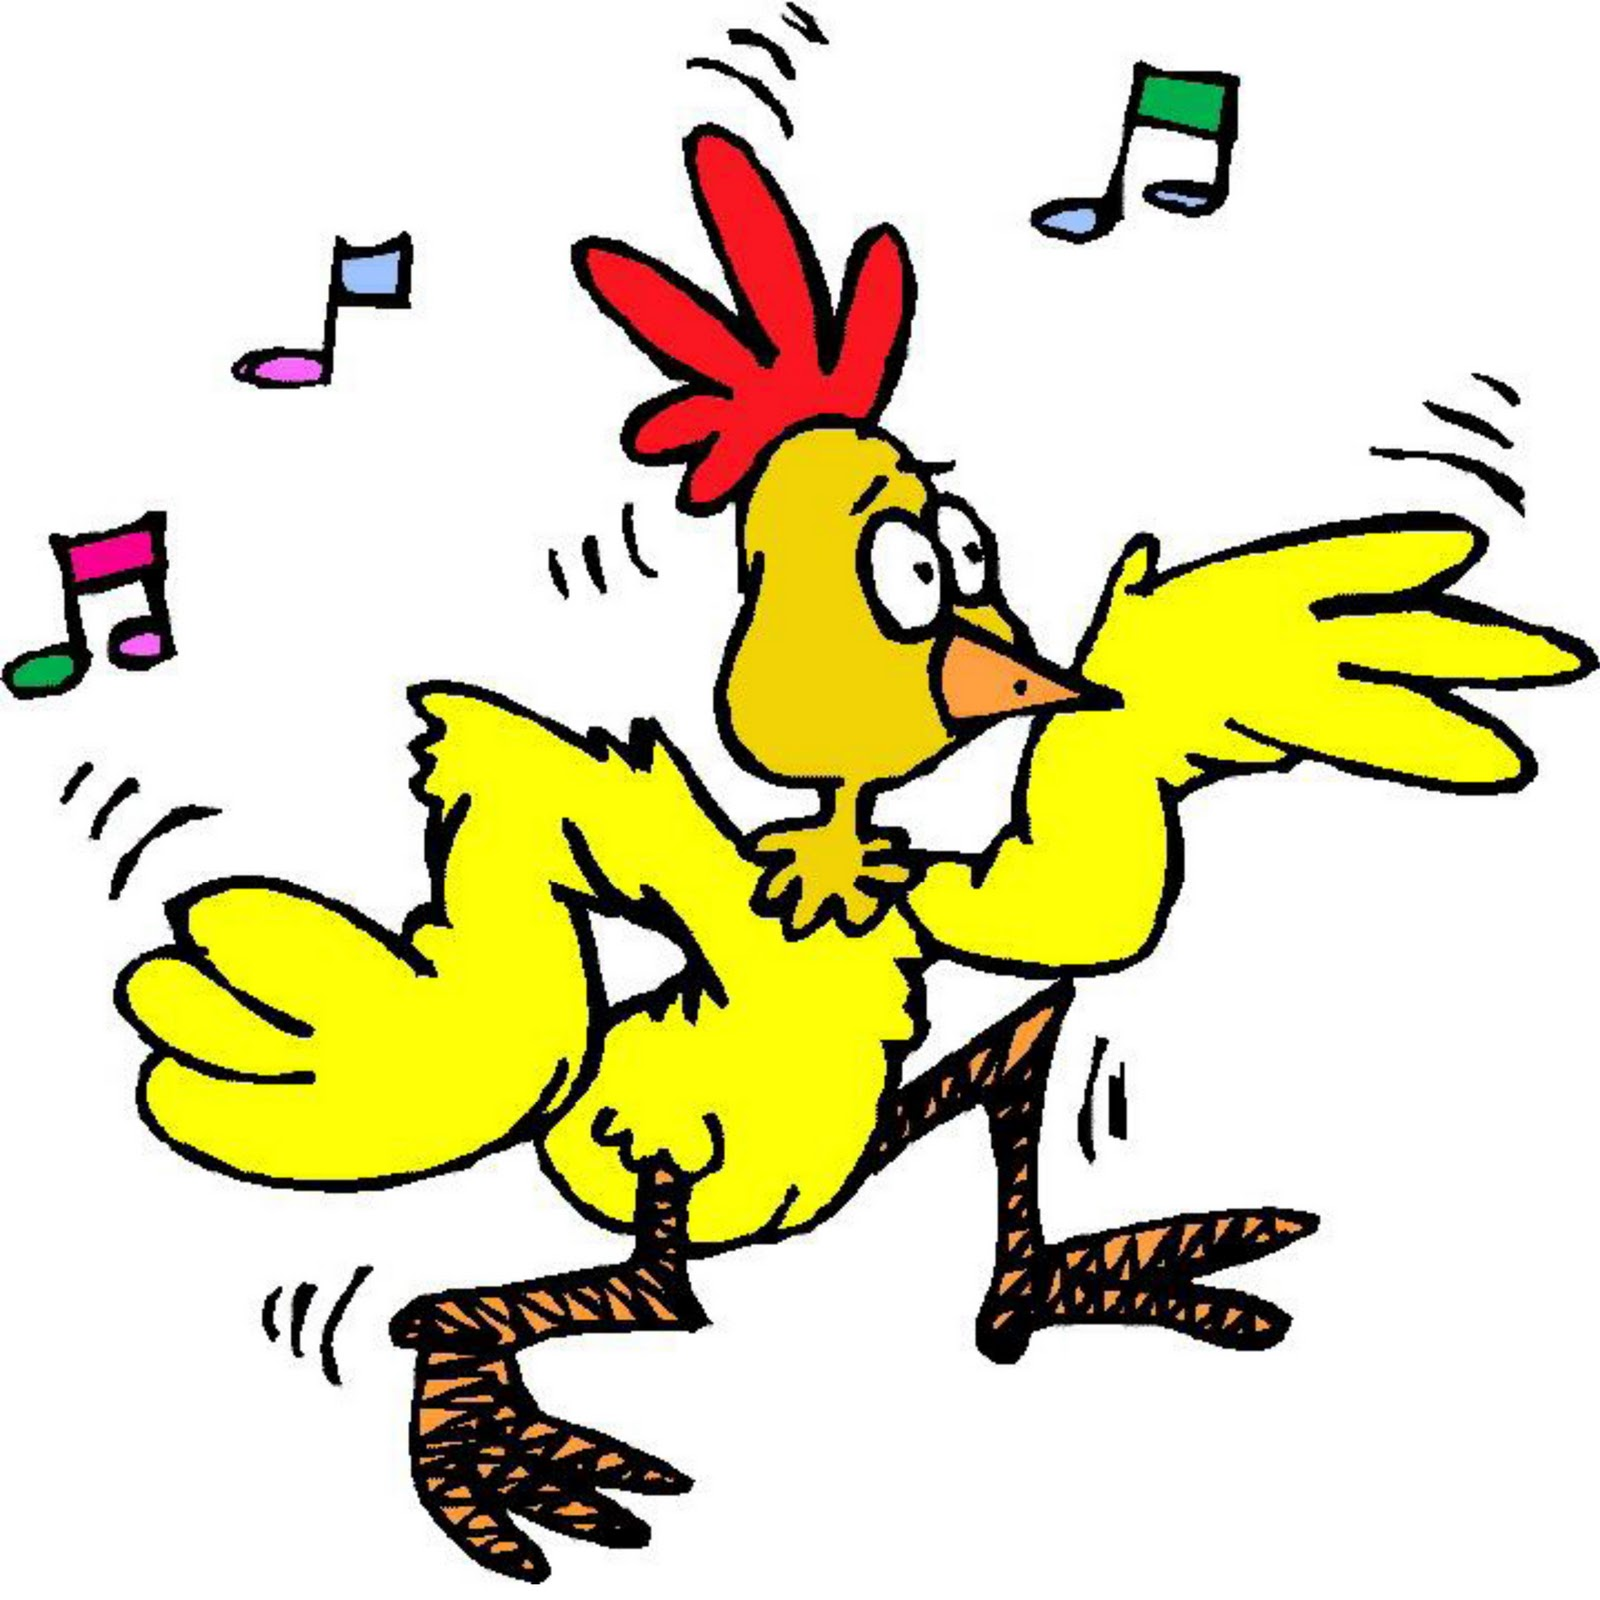 Cute chicken clipart free clipart images | Chicken clip art, Cartoon chicken,  Chicken drawing